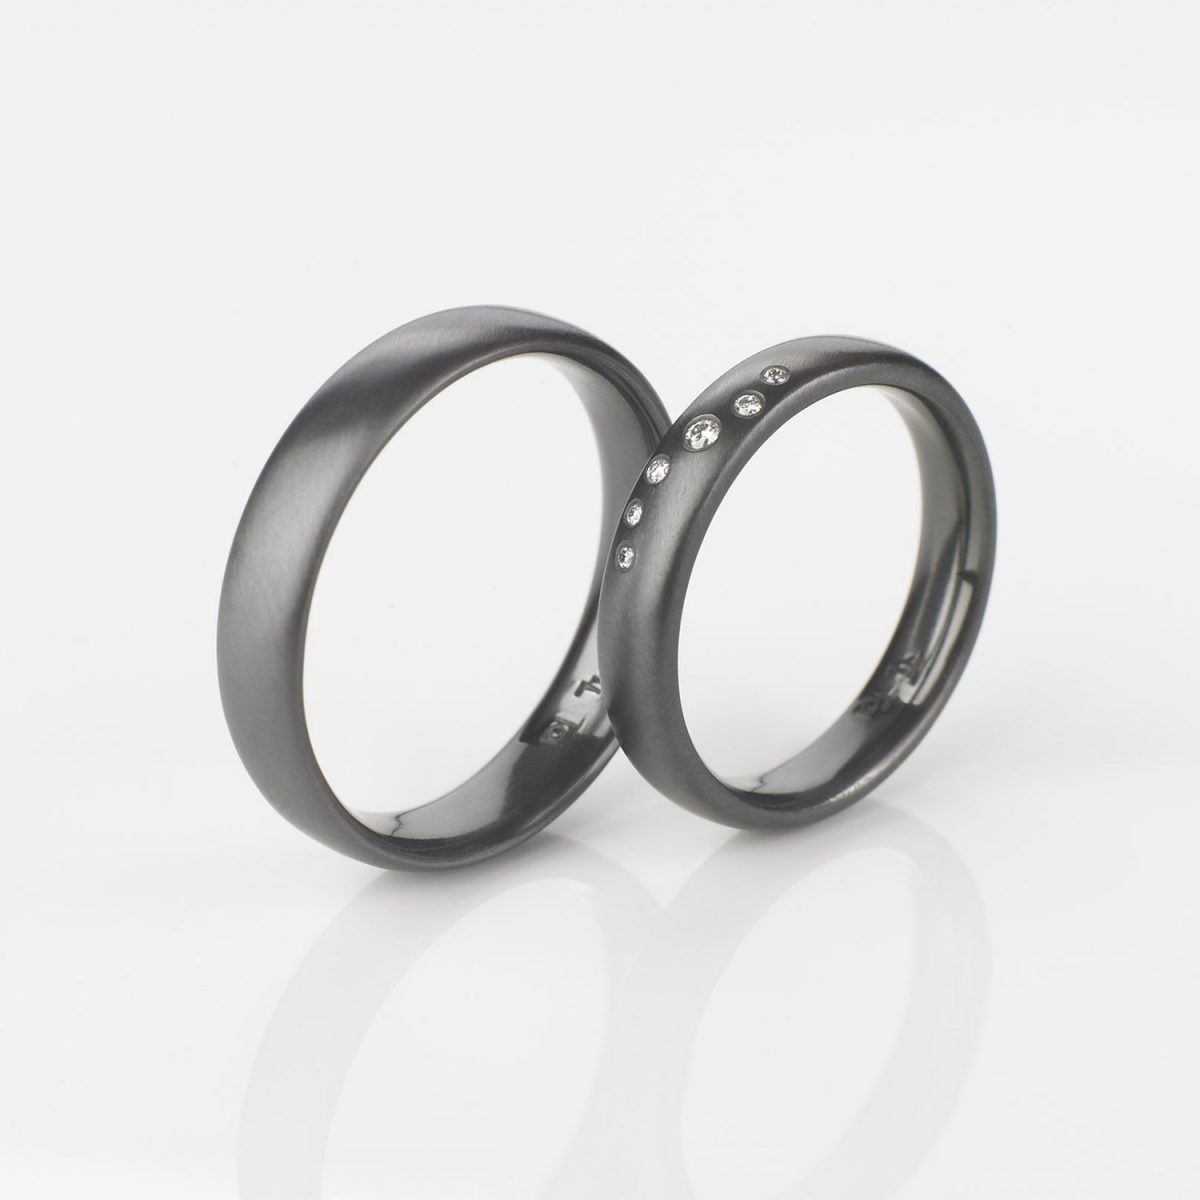 Tantal Eheringe | Hochzeitsringe | Ringpaar True Love Collection No:34